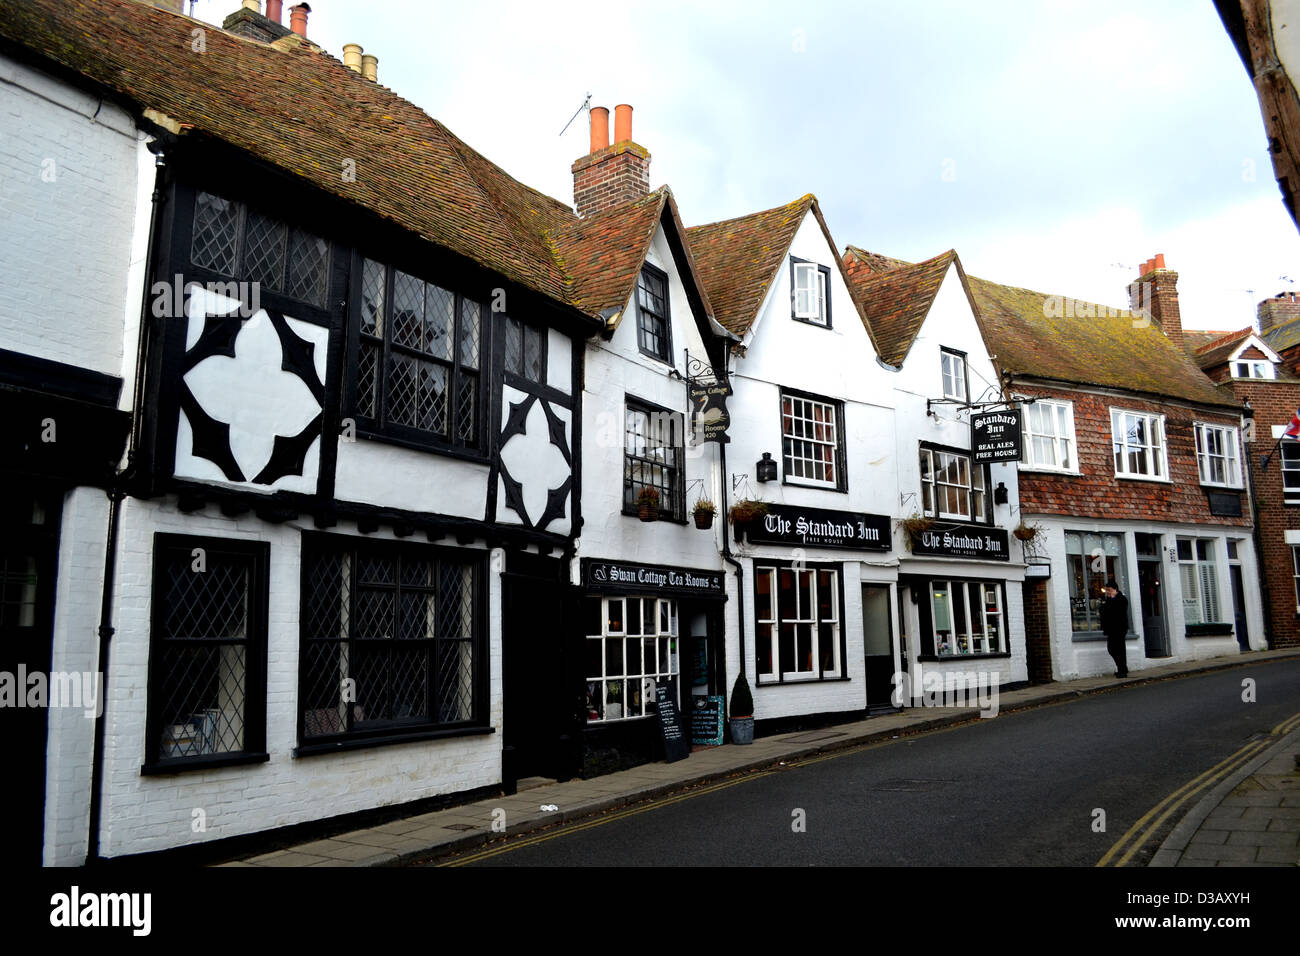 The Mint, an extension of Rye High Street in East Sussex is lined with early medieval, black and white, half-timbered - Stock Image